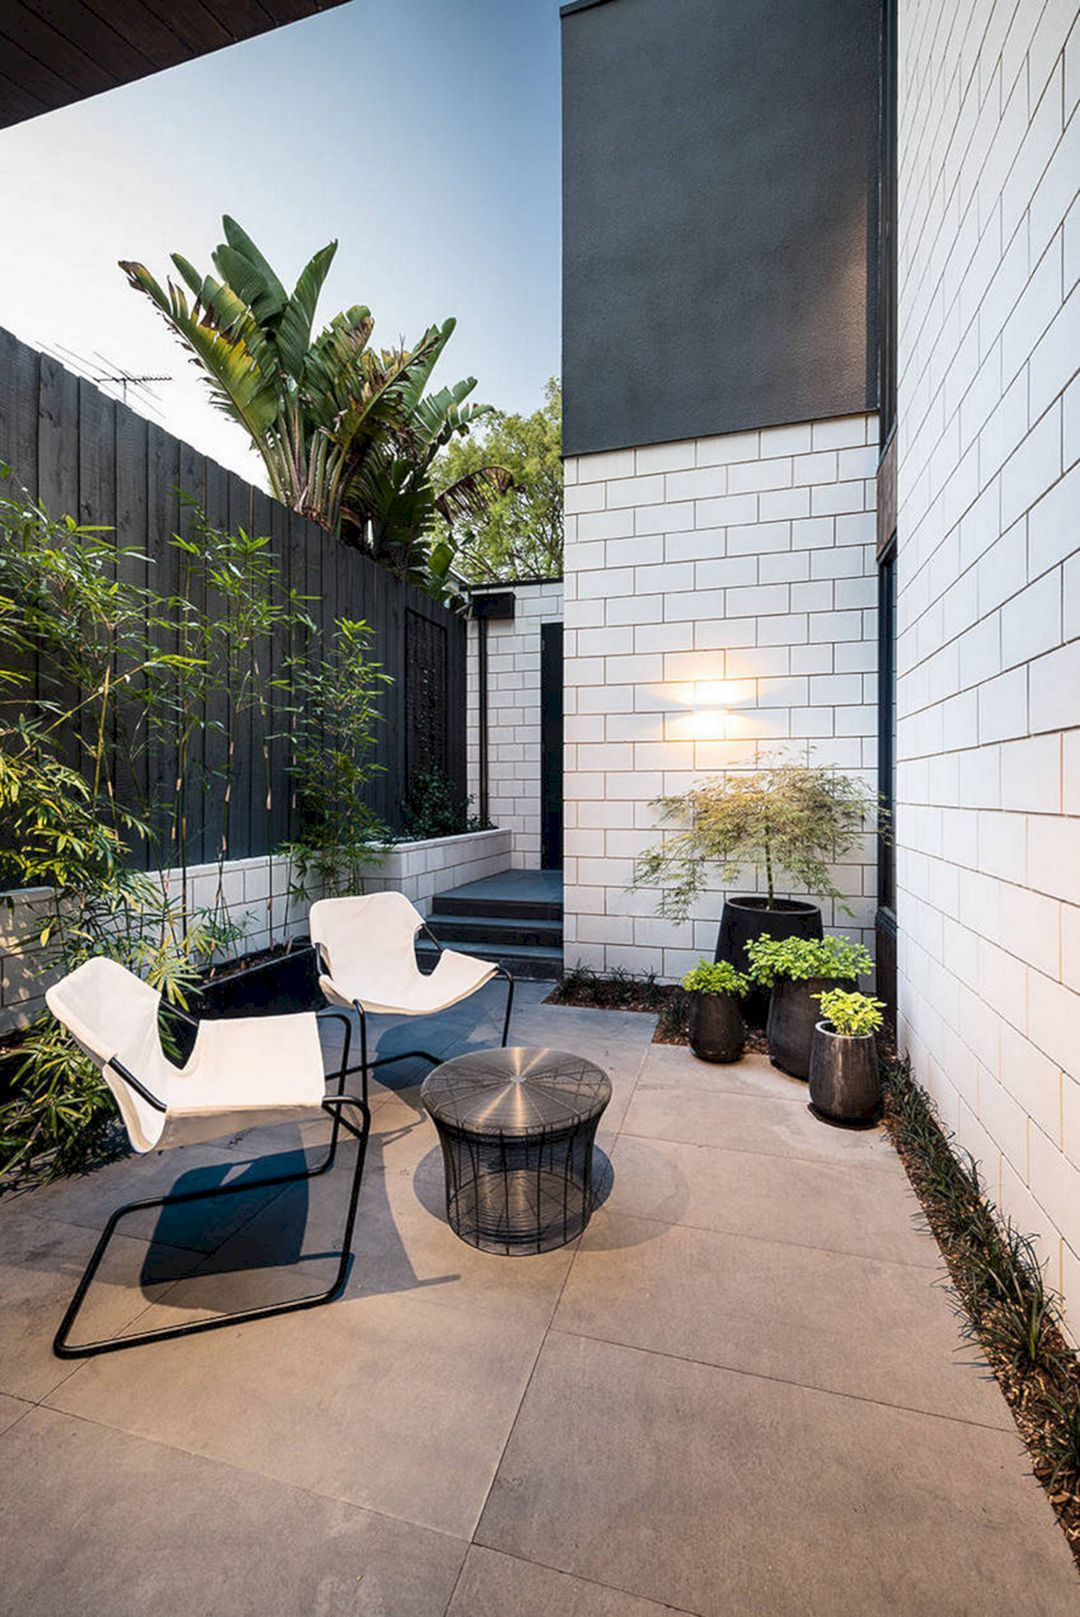 12 Awesome Outdoor Living Space Decoration Ideas On a ... on Courtyard Ideas On A Budget id=13565